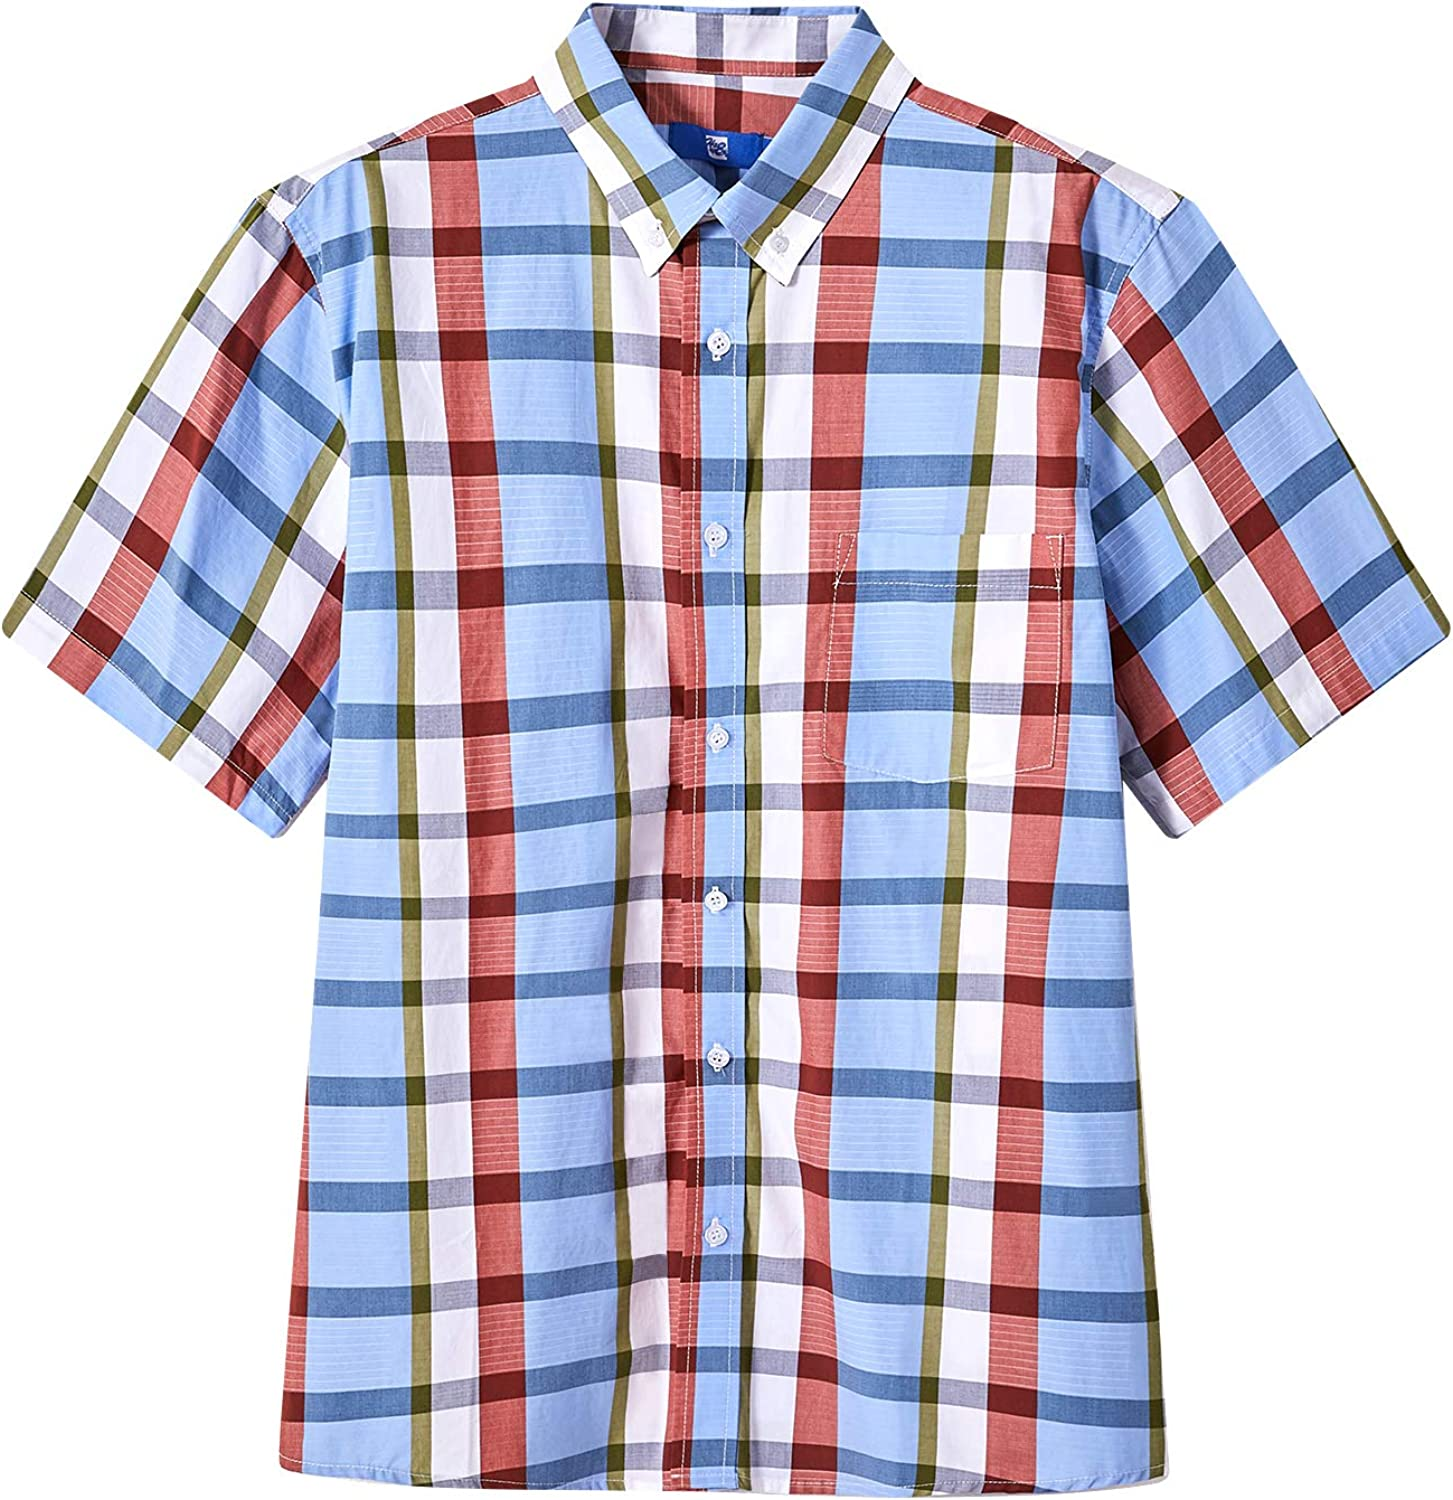 HZHY safety Men's Casual Button-Down New item Short Sleeve Shirts Cotton 100%